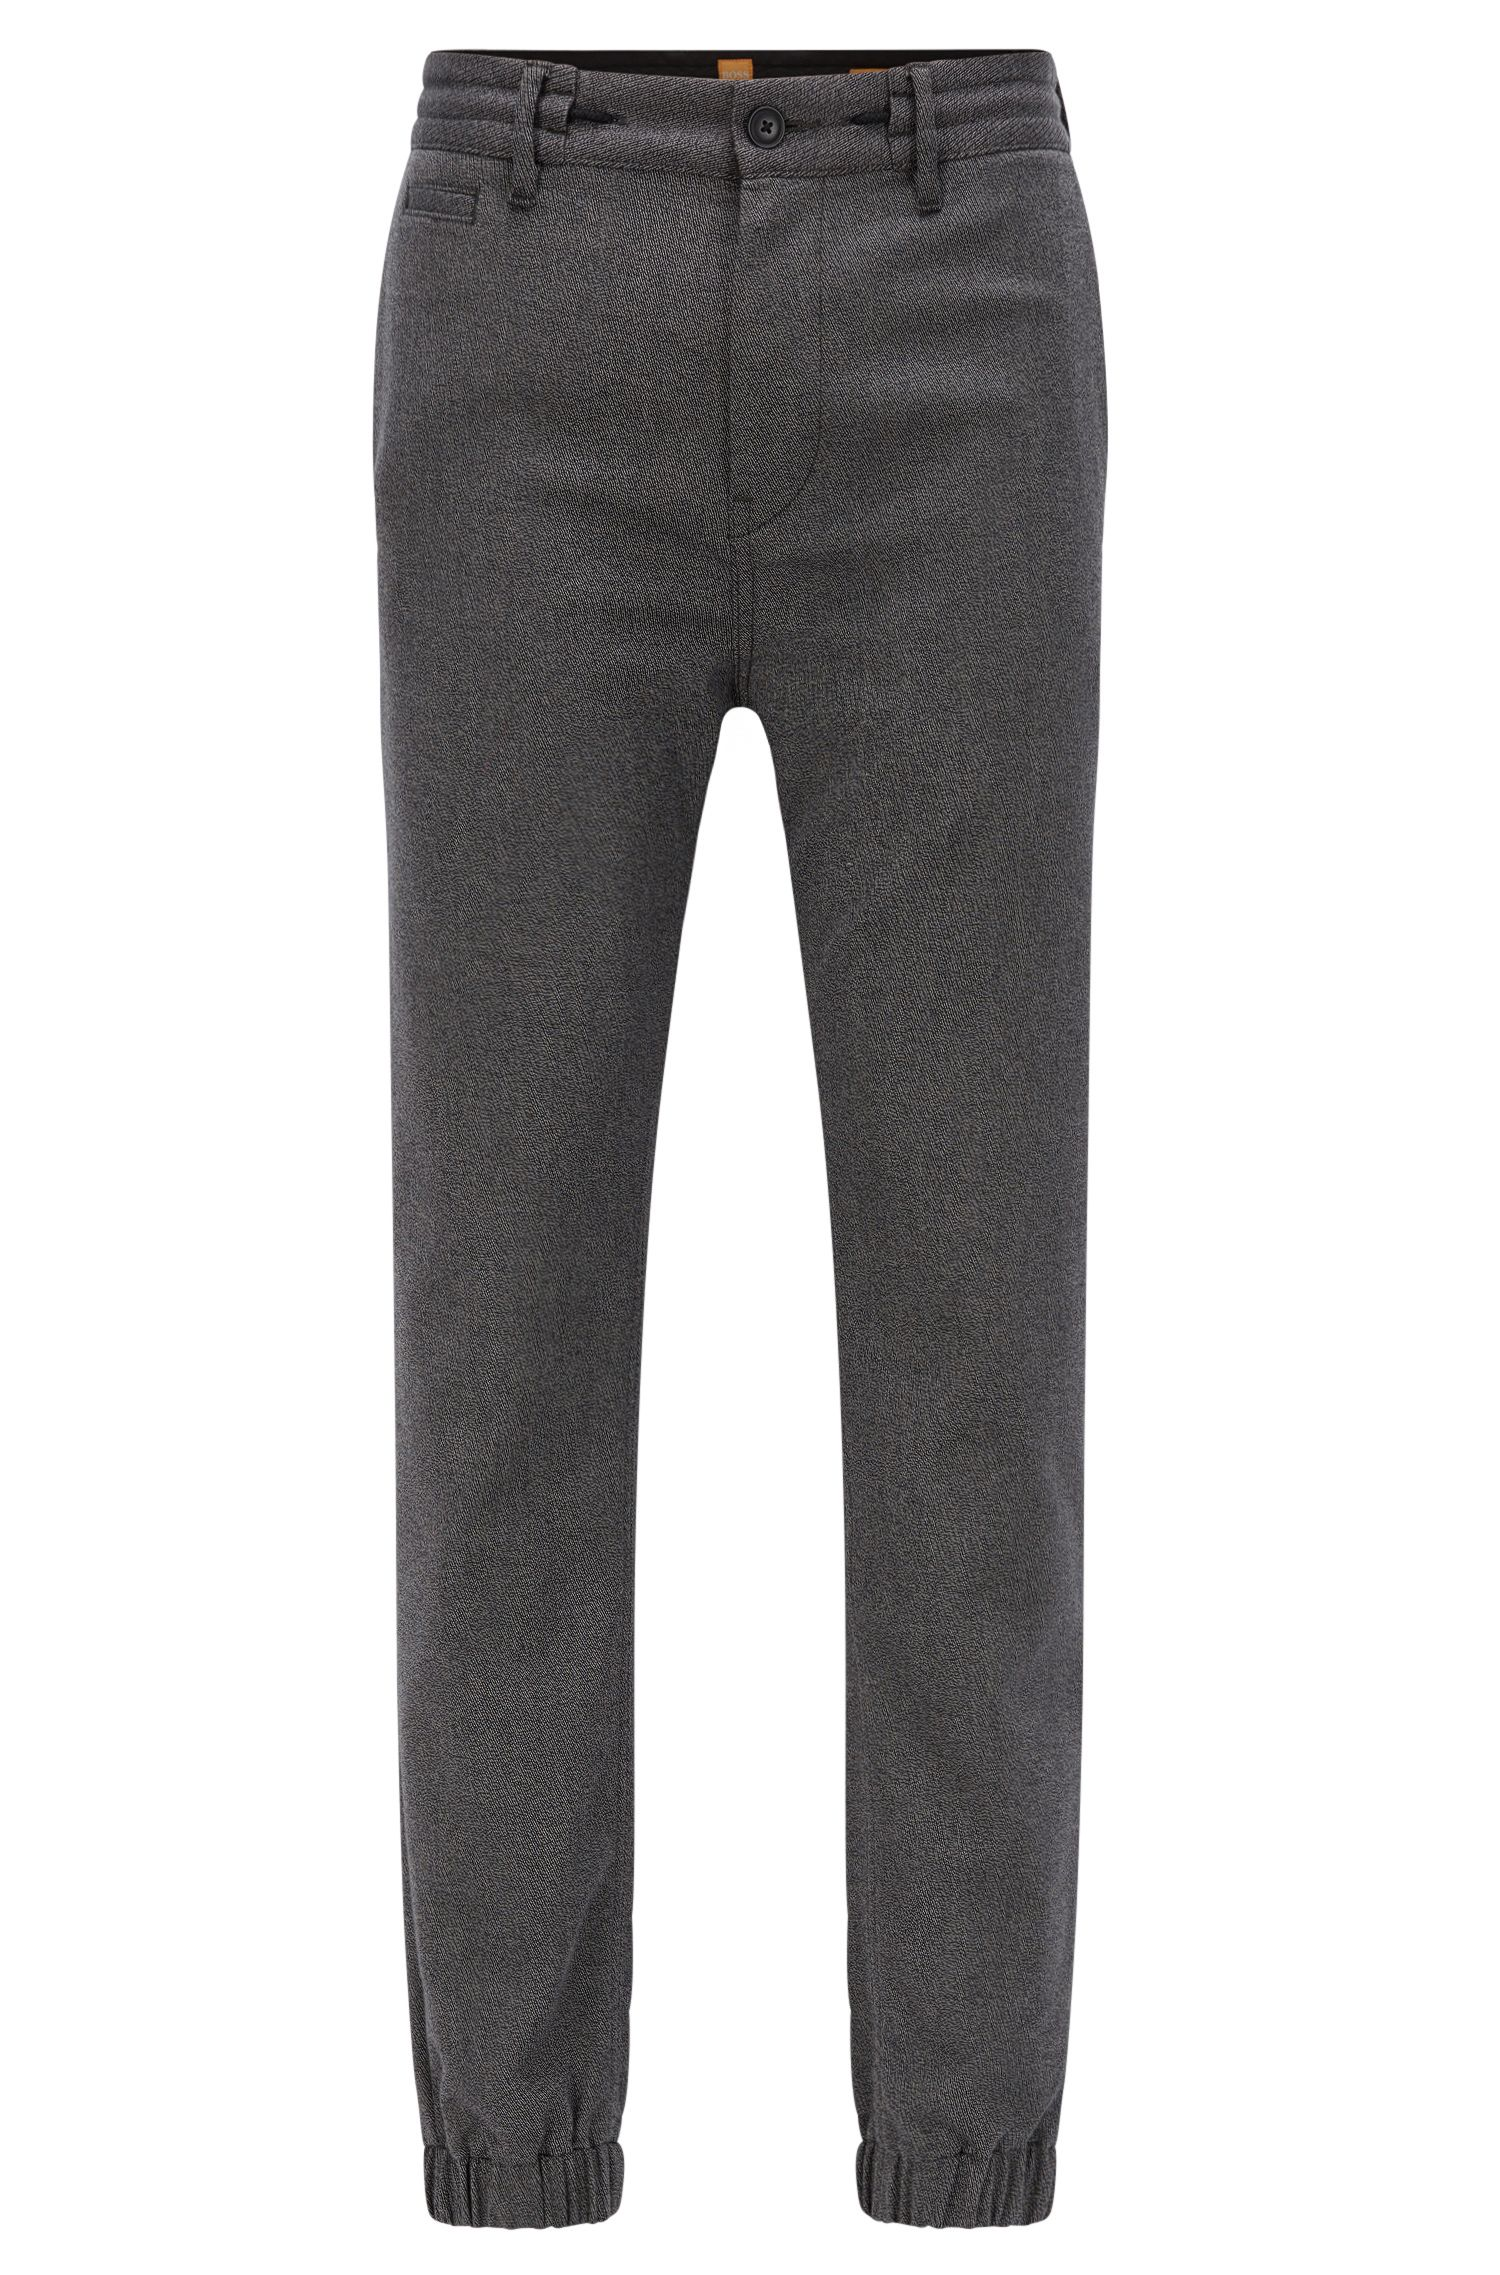 'Siman W' | Tapered Fit, Twill Stretch Cotton Pants